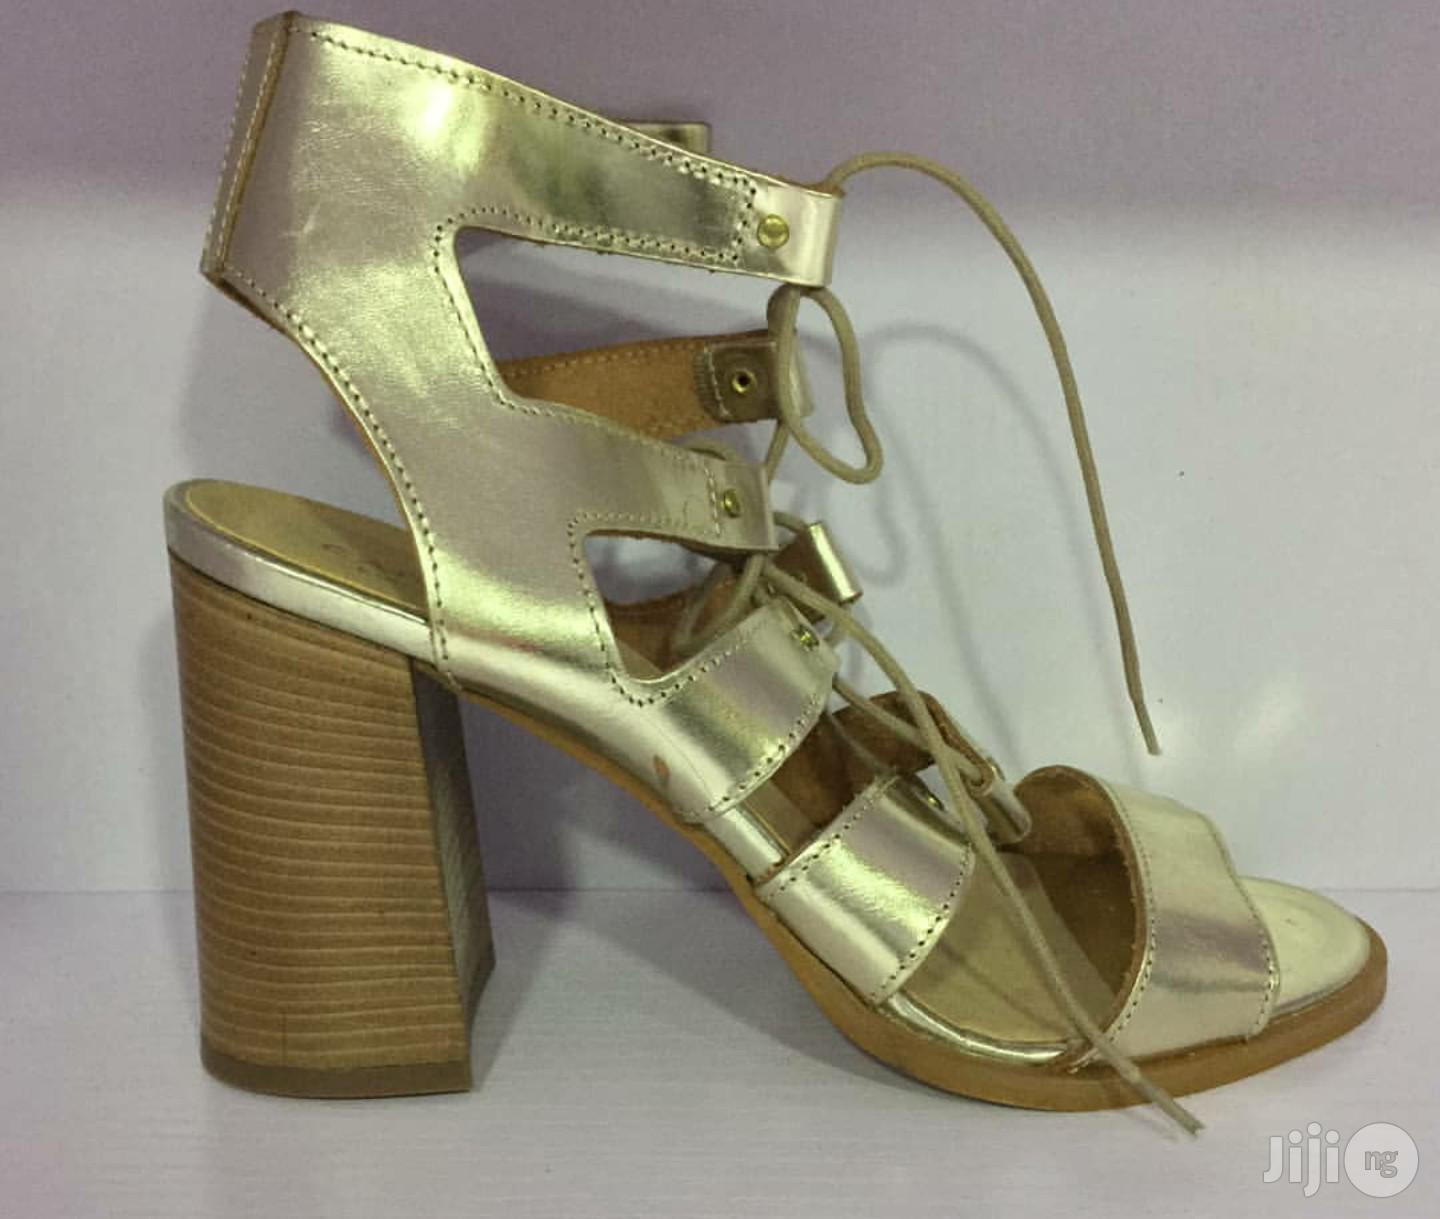 Leather Gold Block Heel Lace Up Sandals   Shoes for sale in Lekki, Lagos State, Nigeria